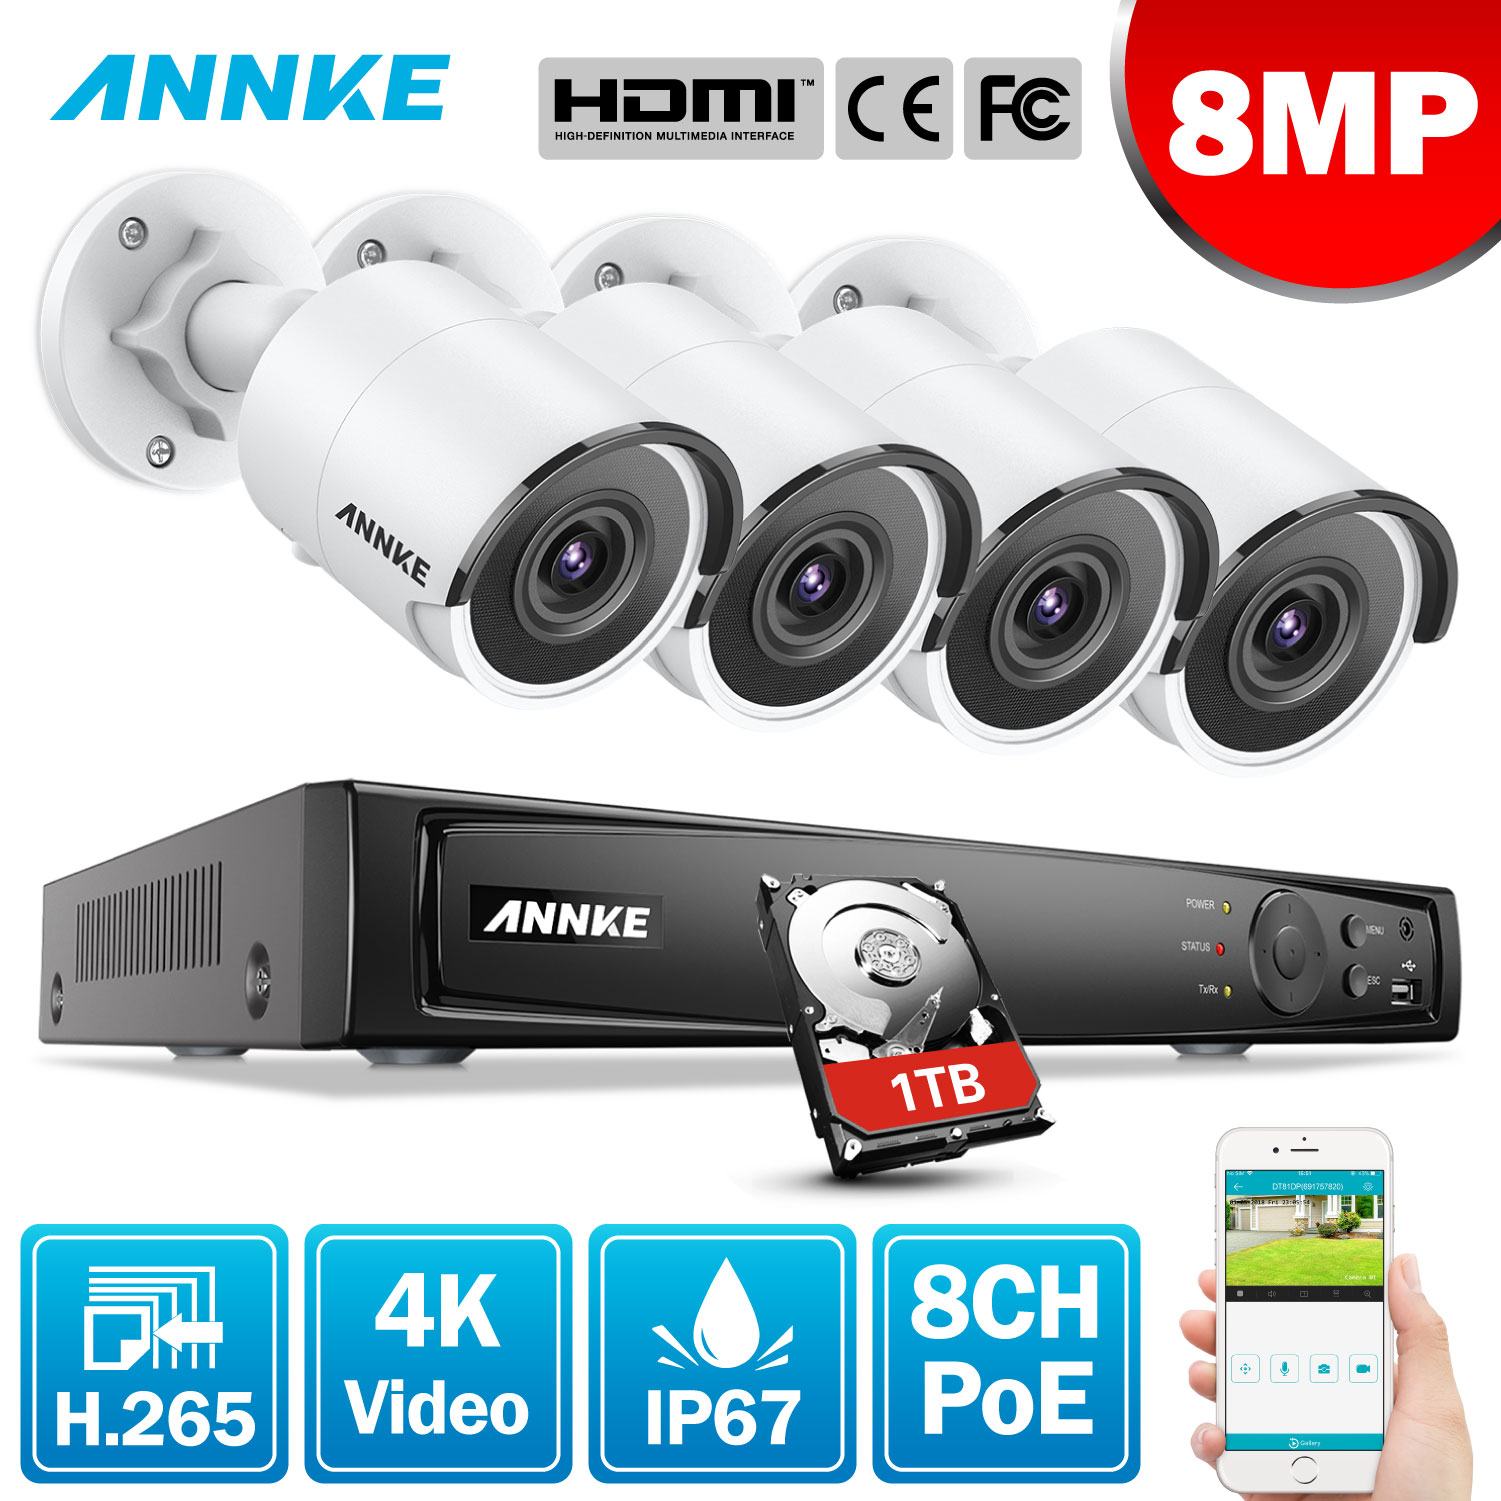 ANNKE 8CH 8MP Ultra HD PoE Network Video Security System 4K H.265 Surveillance NVR 4x8MP HD IP67 POE CCTV Bullet Cameras-in Surveillance System from Security & Protection